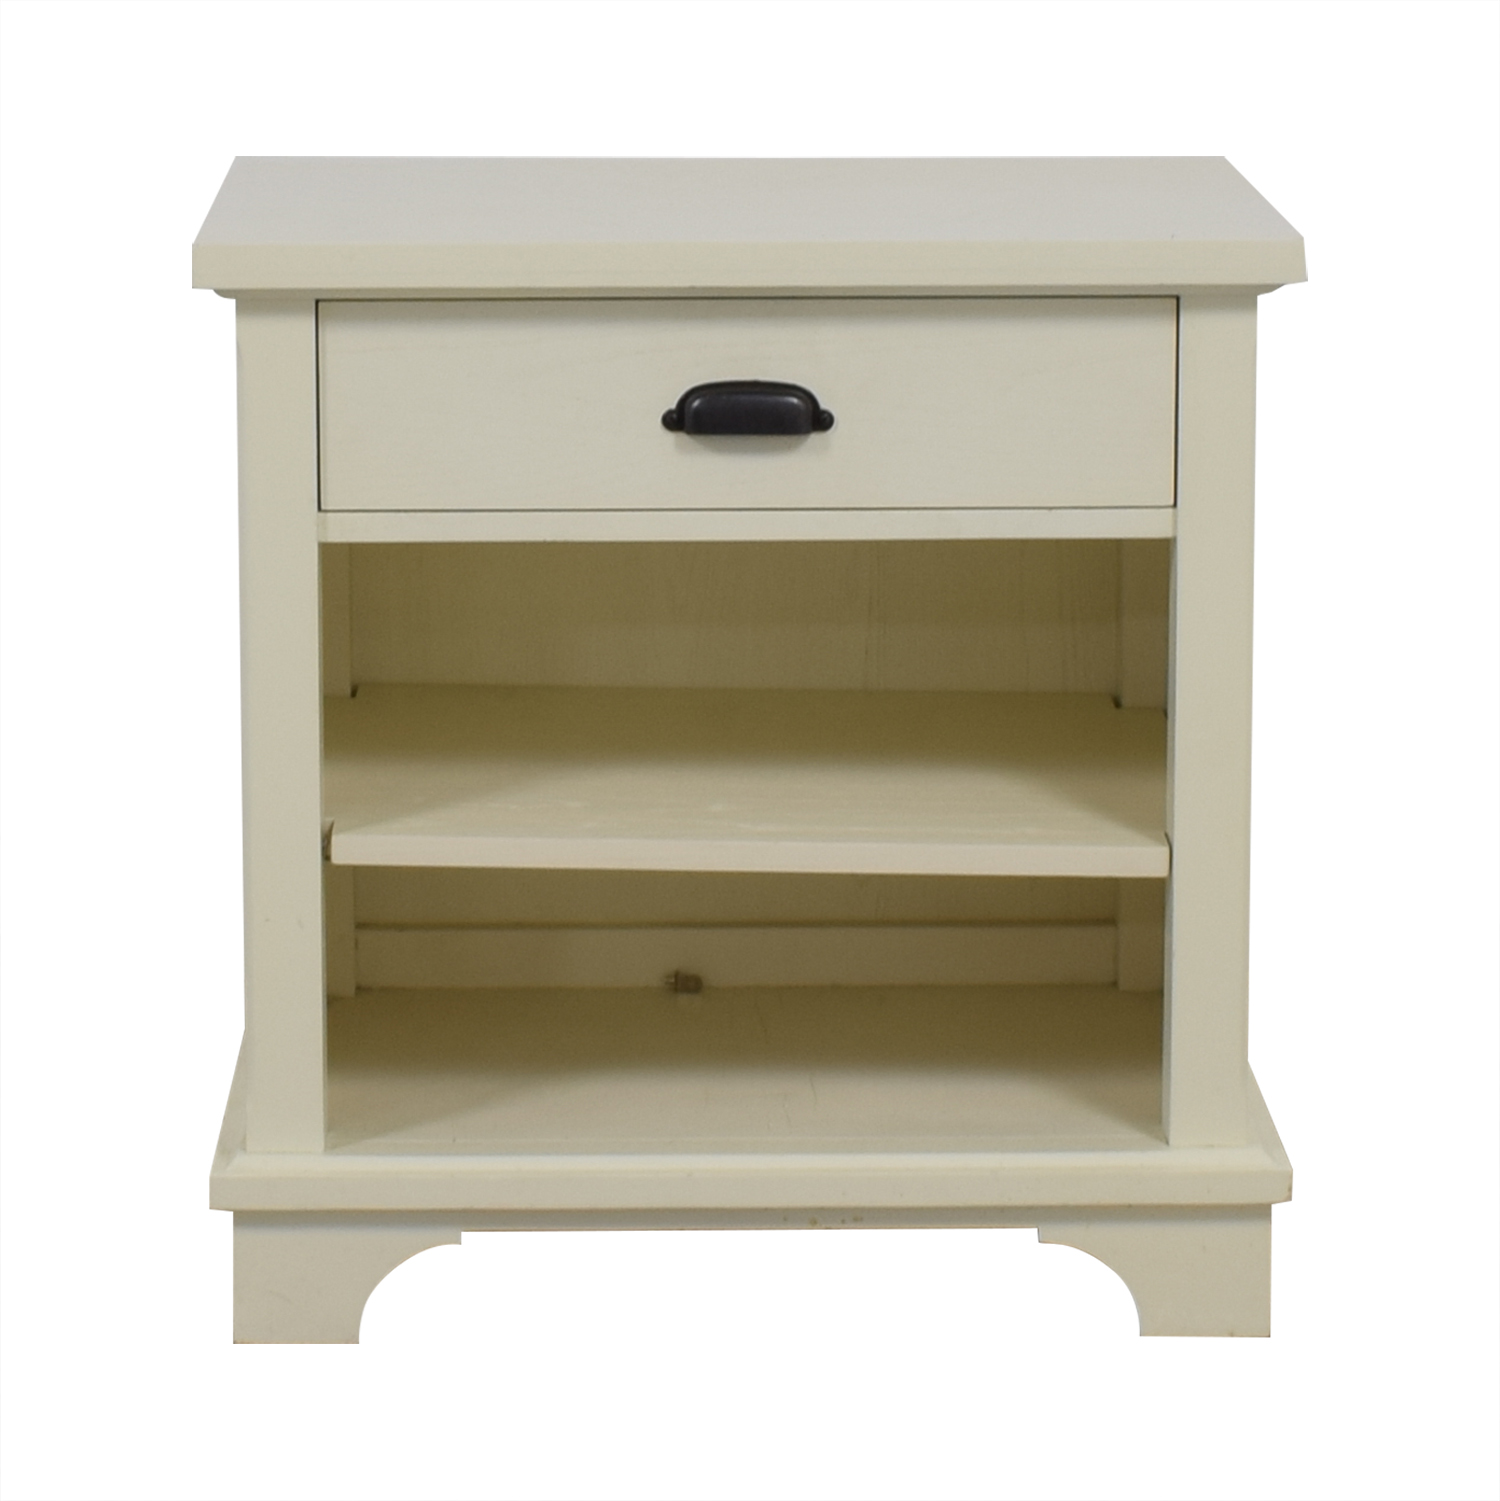 Pottery Barn Pottery Barn White Single Drawer Nightstand nj